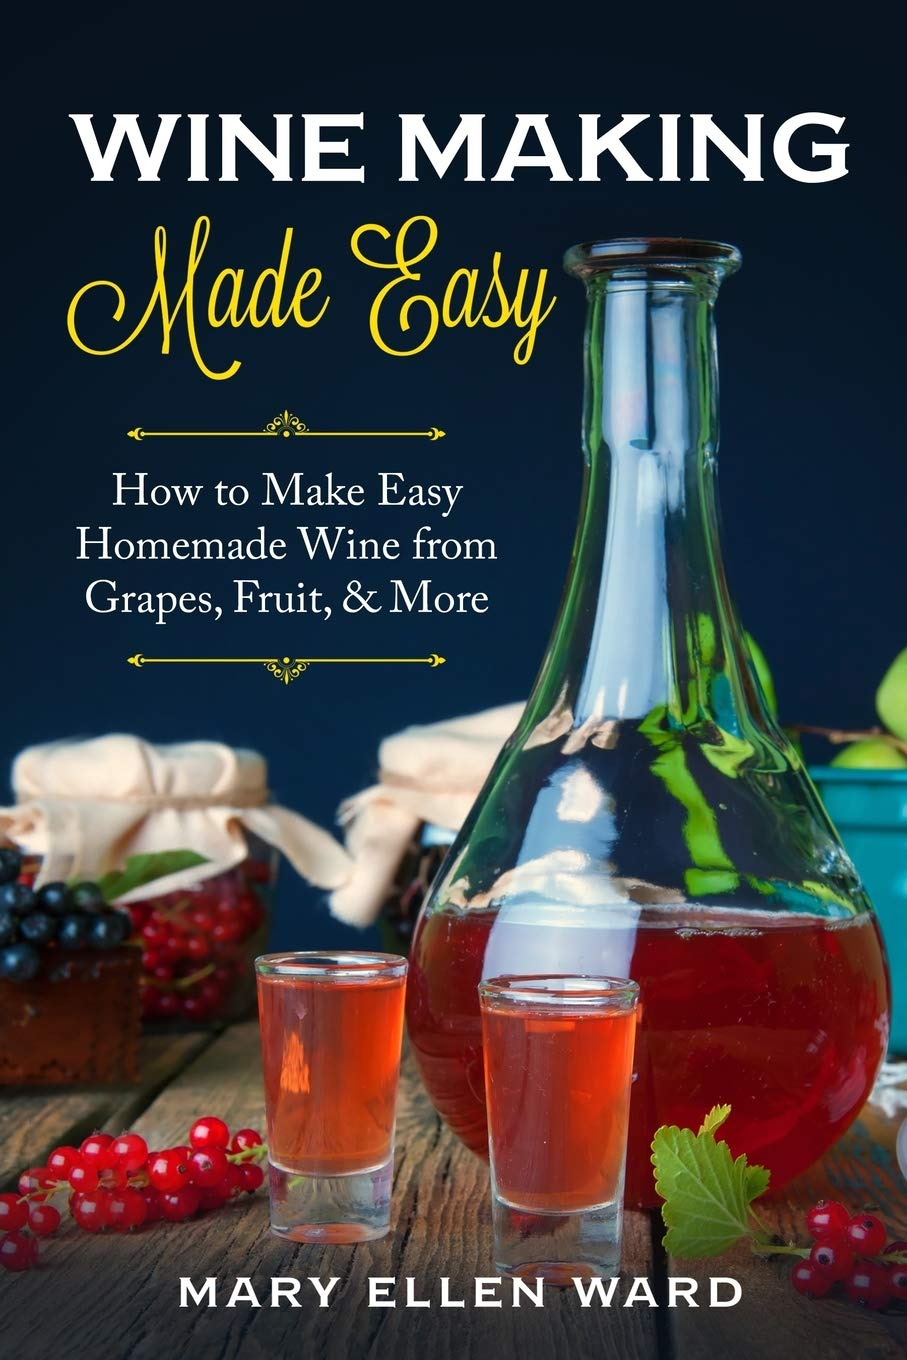 Wine Making Made Easy: How to Make Easy Homemade Wine from Grapes